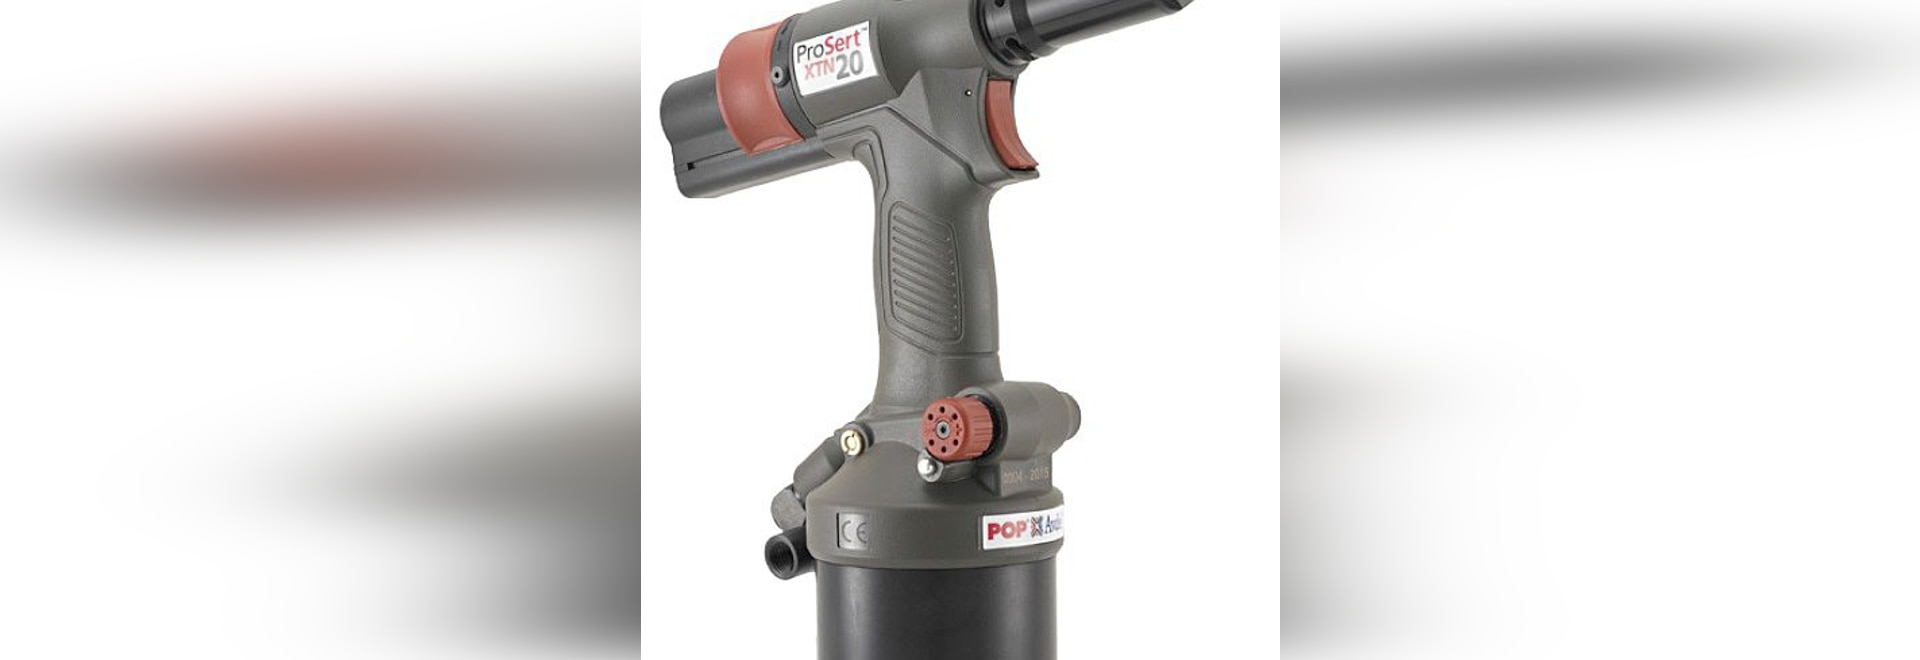 POP ProSert XTN20: Precise and economical installation with